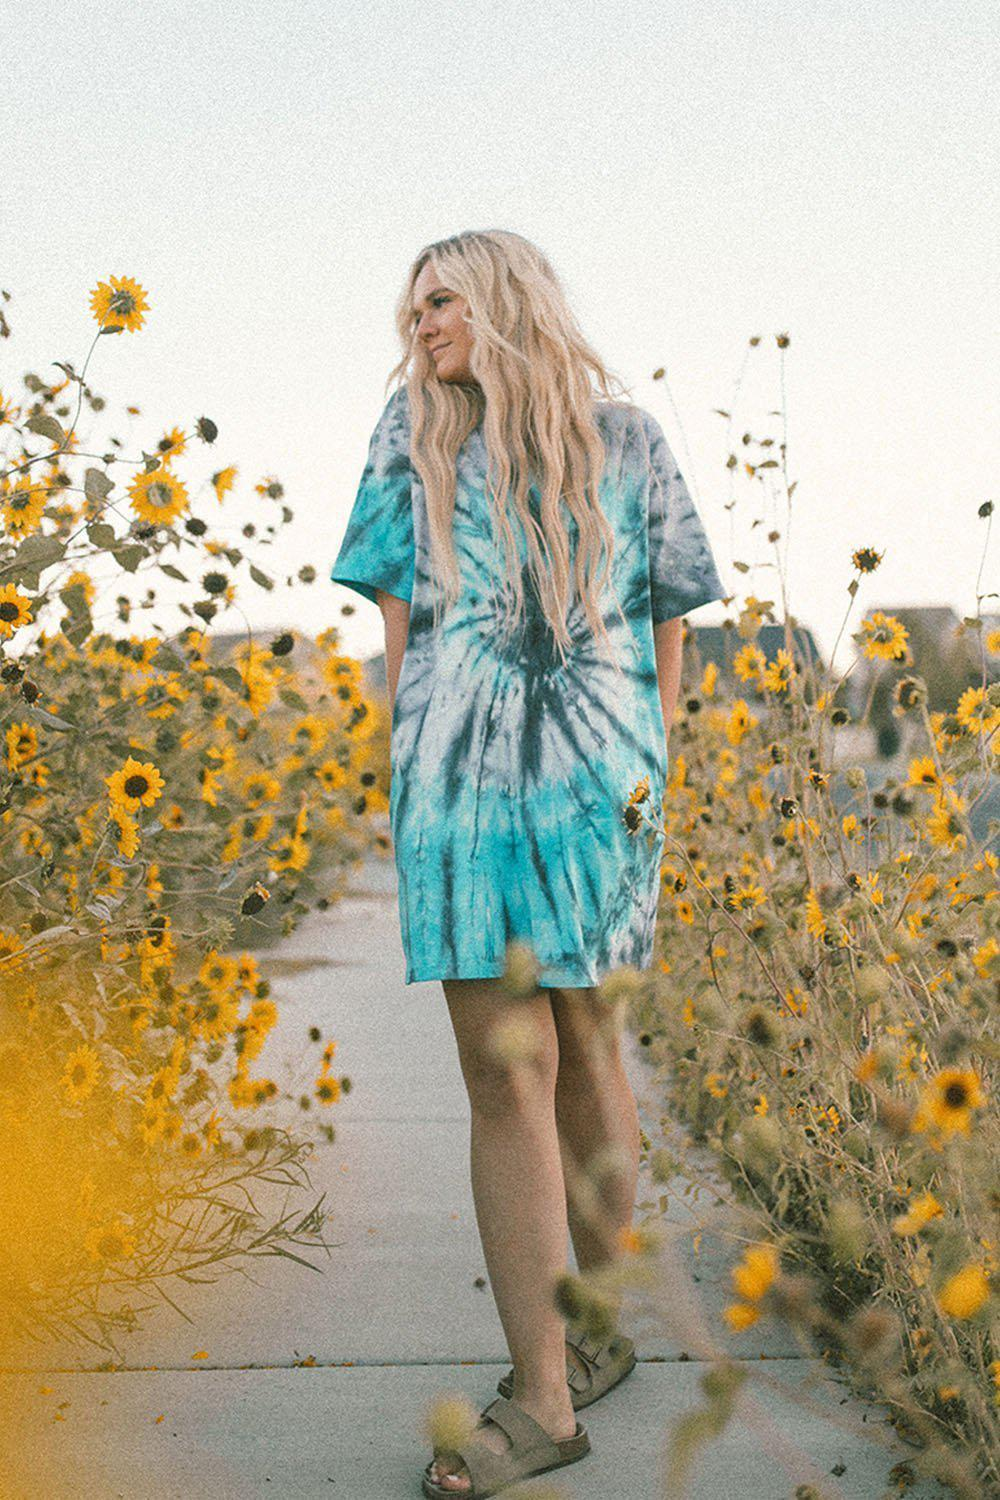 best_seller, Toxic Love Tie Dye T-Shirt Dress, Dress, women's clothing, dresses, skirts, coats, jackets, shoes, boots, tops, tee shirts, jeans, free people, levi's, rollas, jumpsuits, bottoms, tops, sweaters, pullovers, pants, shorts, sweats,.